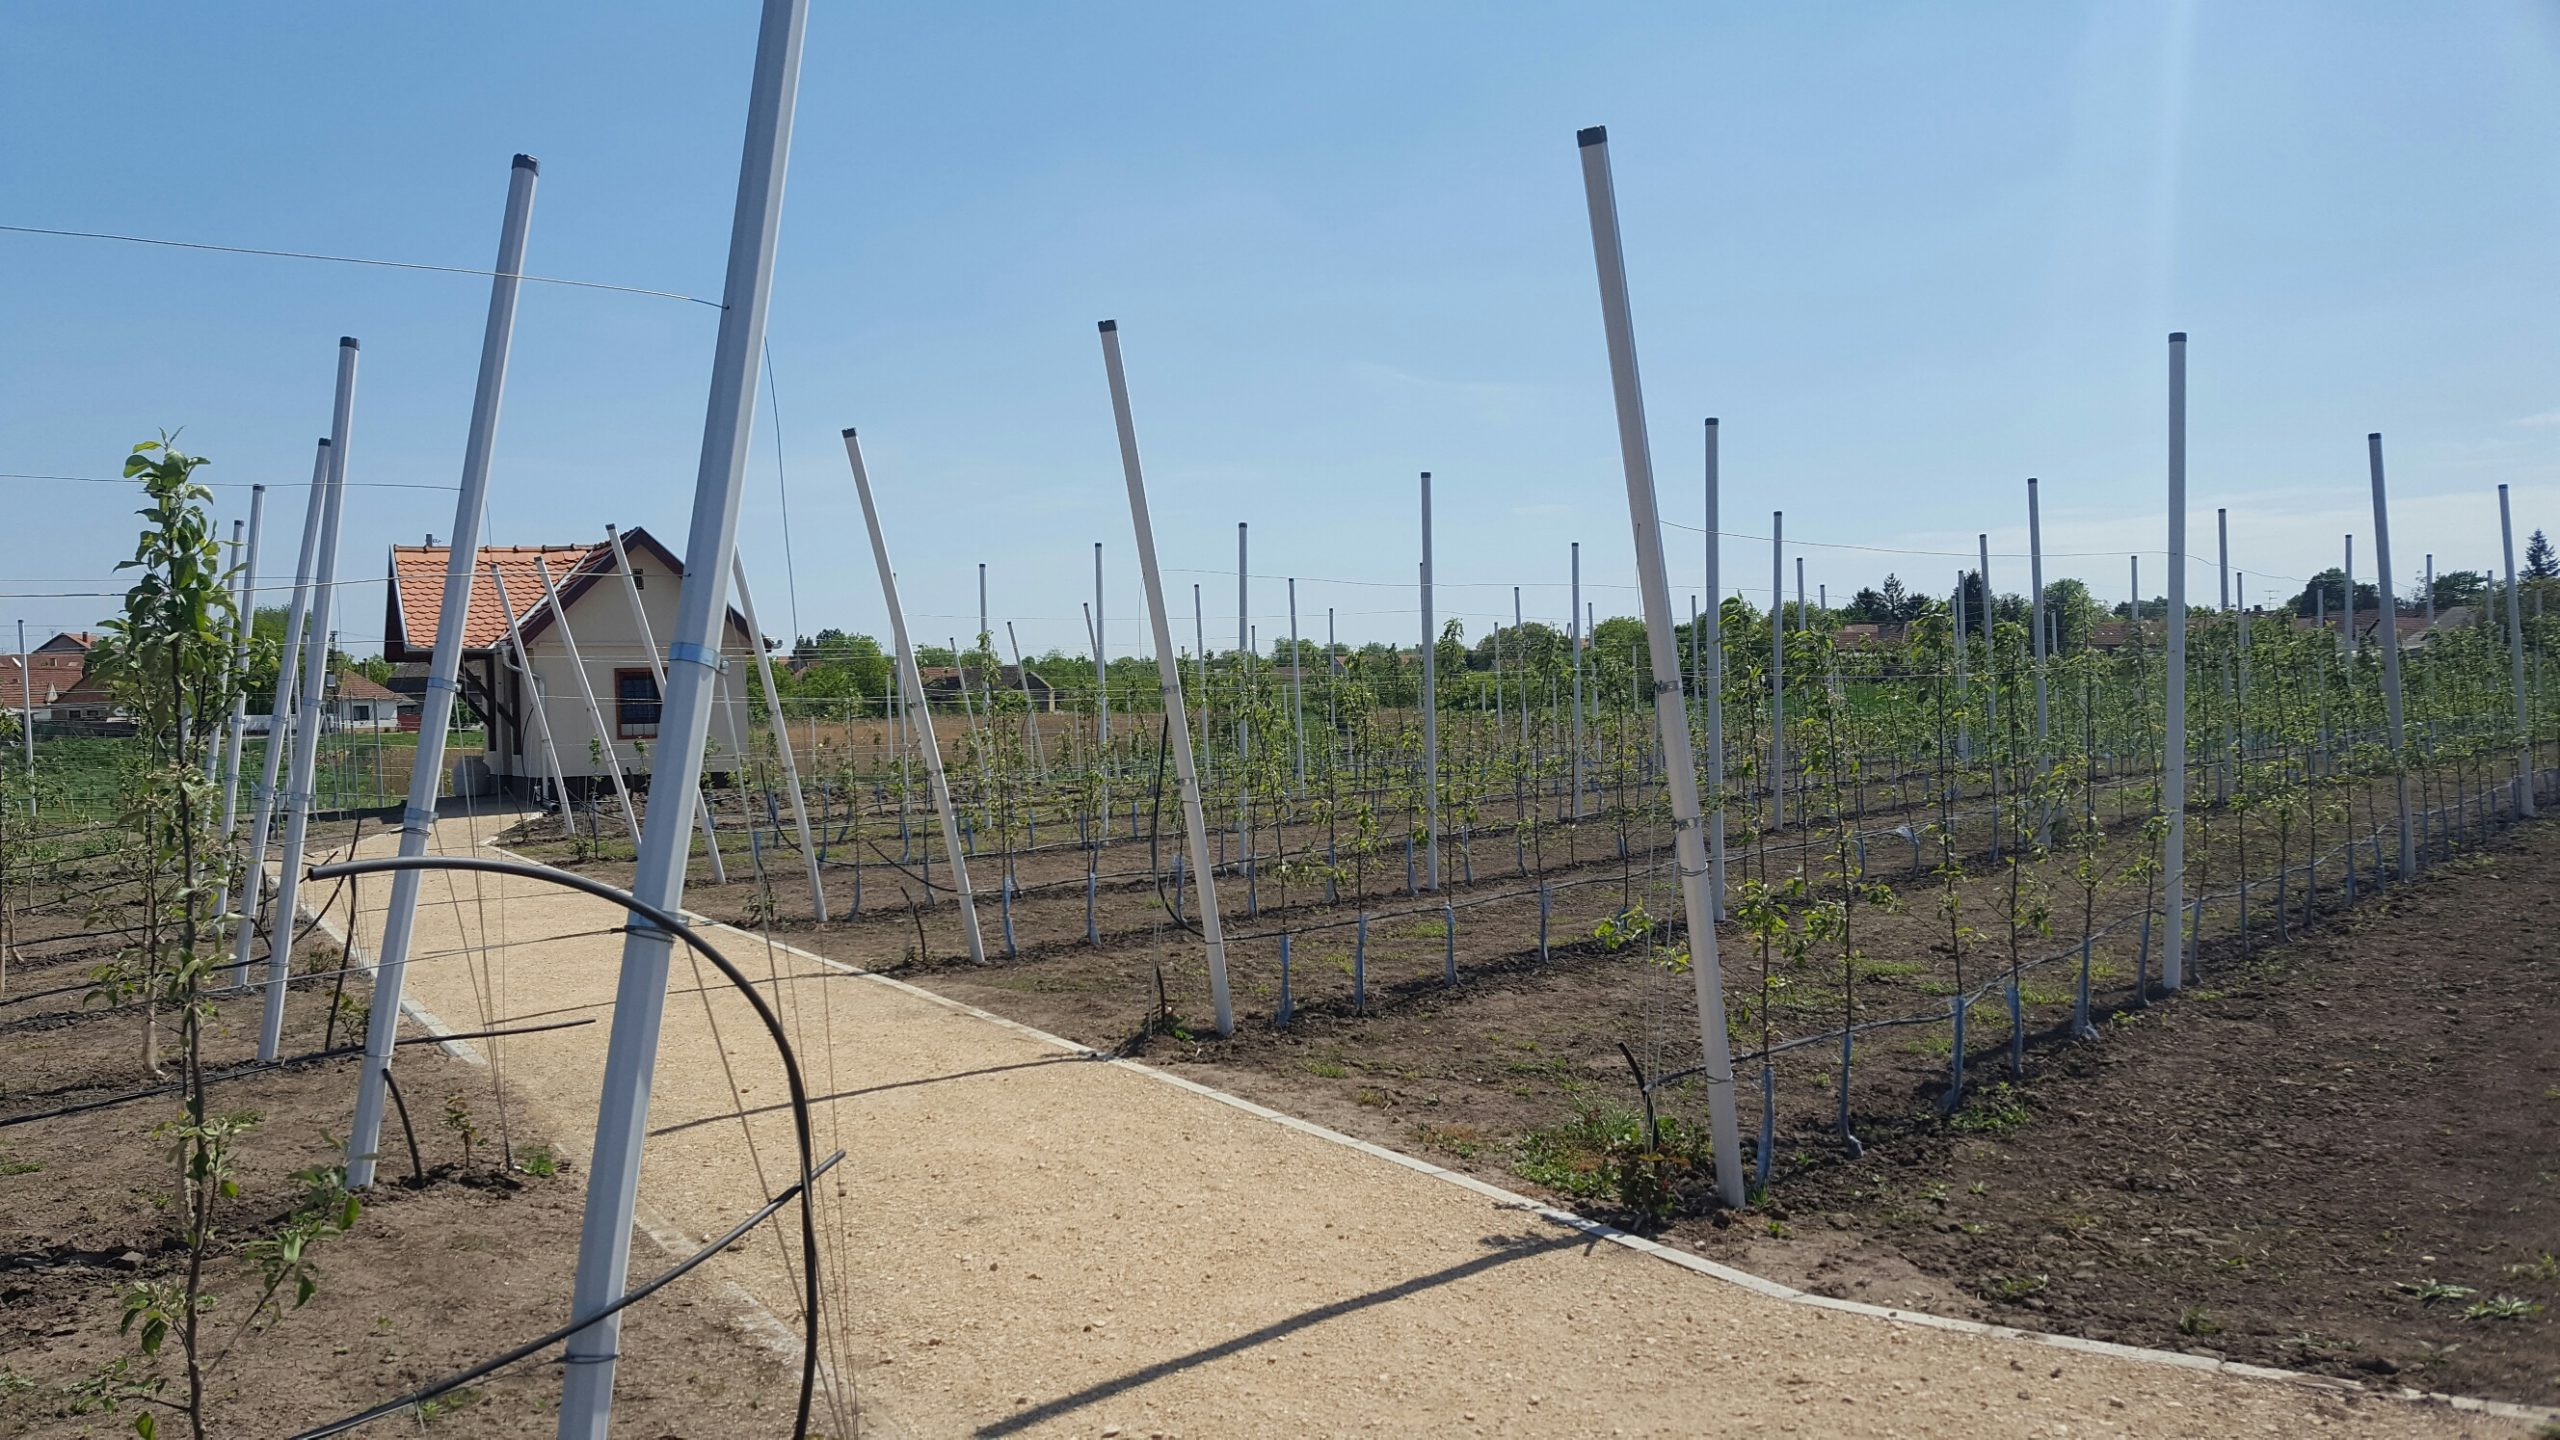 Orchard with PVC poles